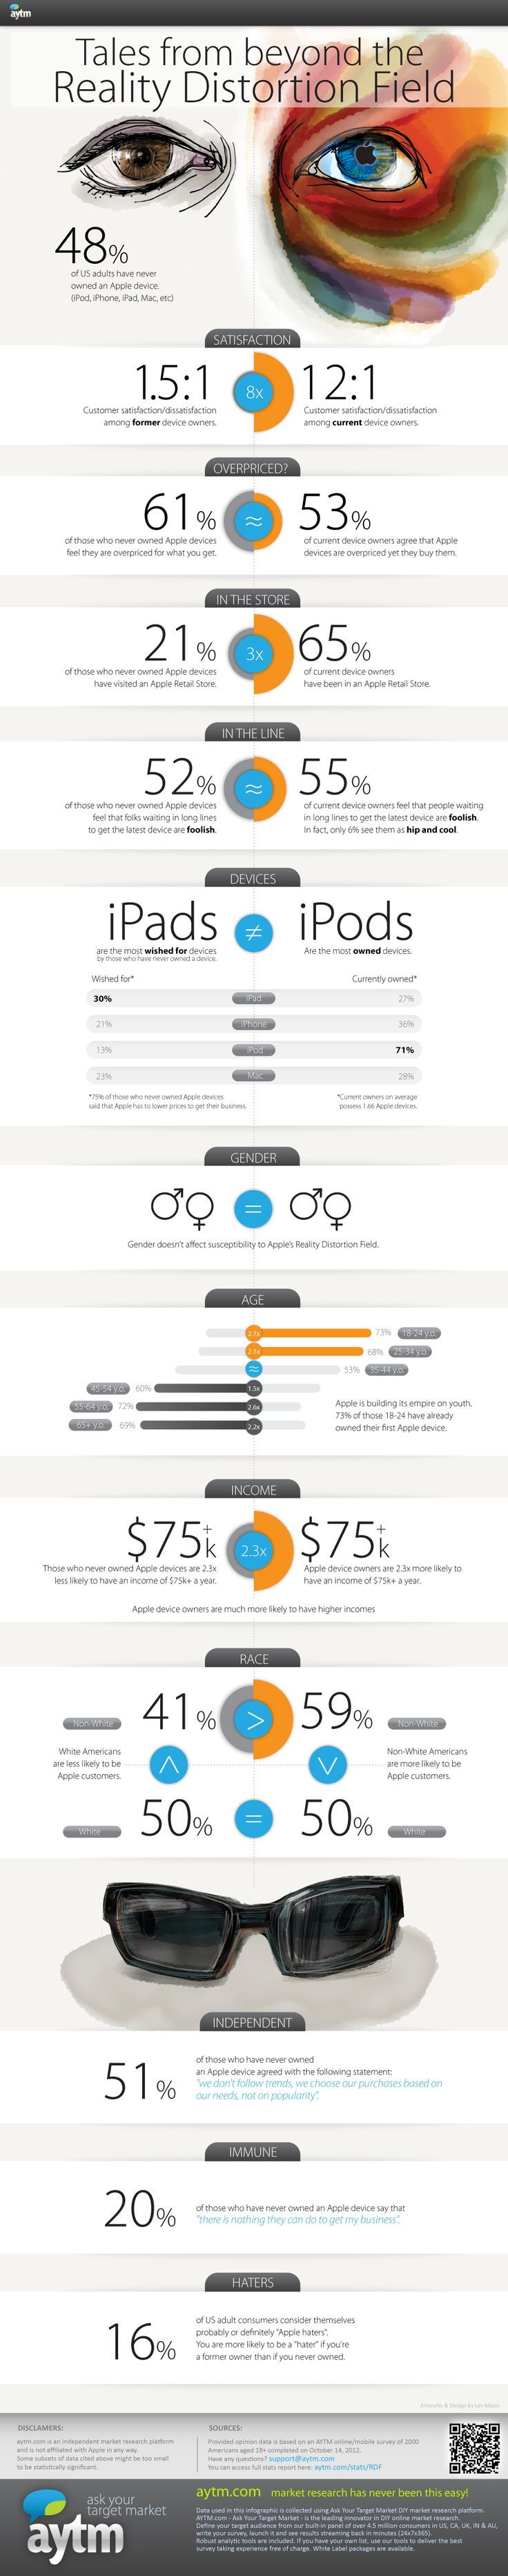 171 best infographic images on pinterest info graphics business are you caught up in apples reality distortion field infographic fandeluxe Choice Image